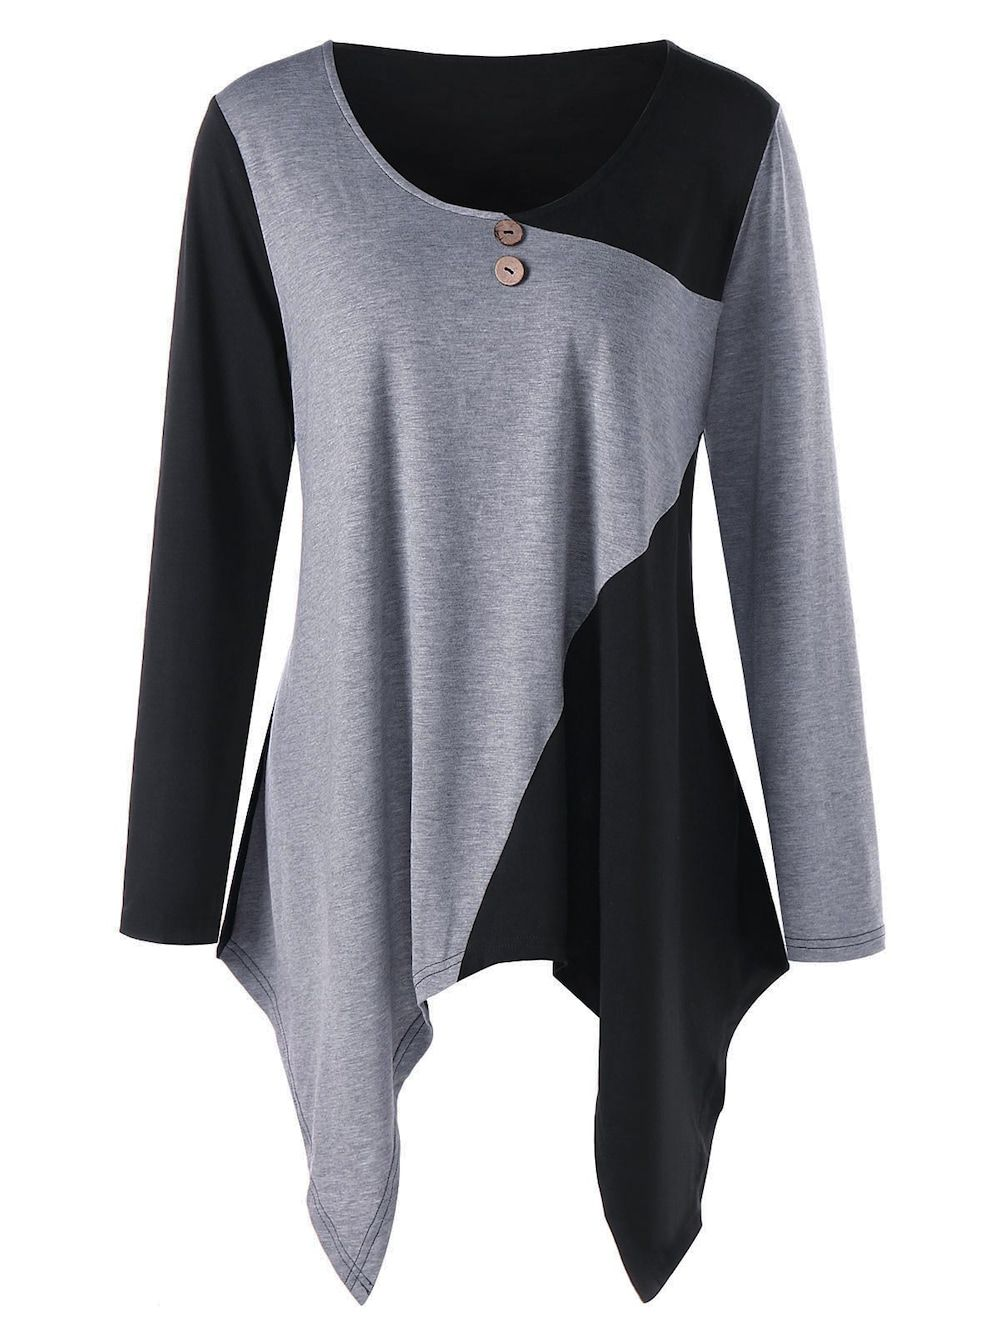 6fe465e8054 Plus Size Asymmetric Color Block Tunic Top - BLACK/GREY 4XL ...